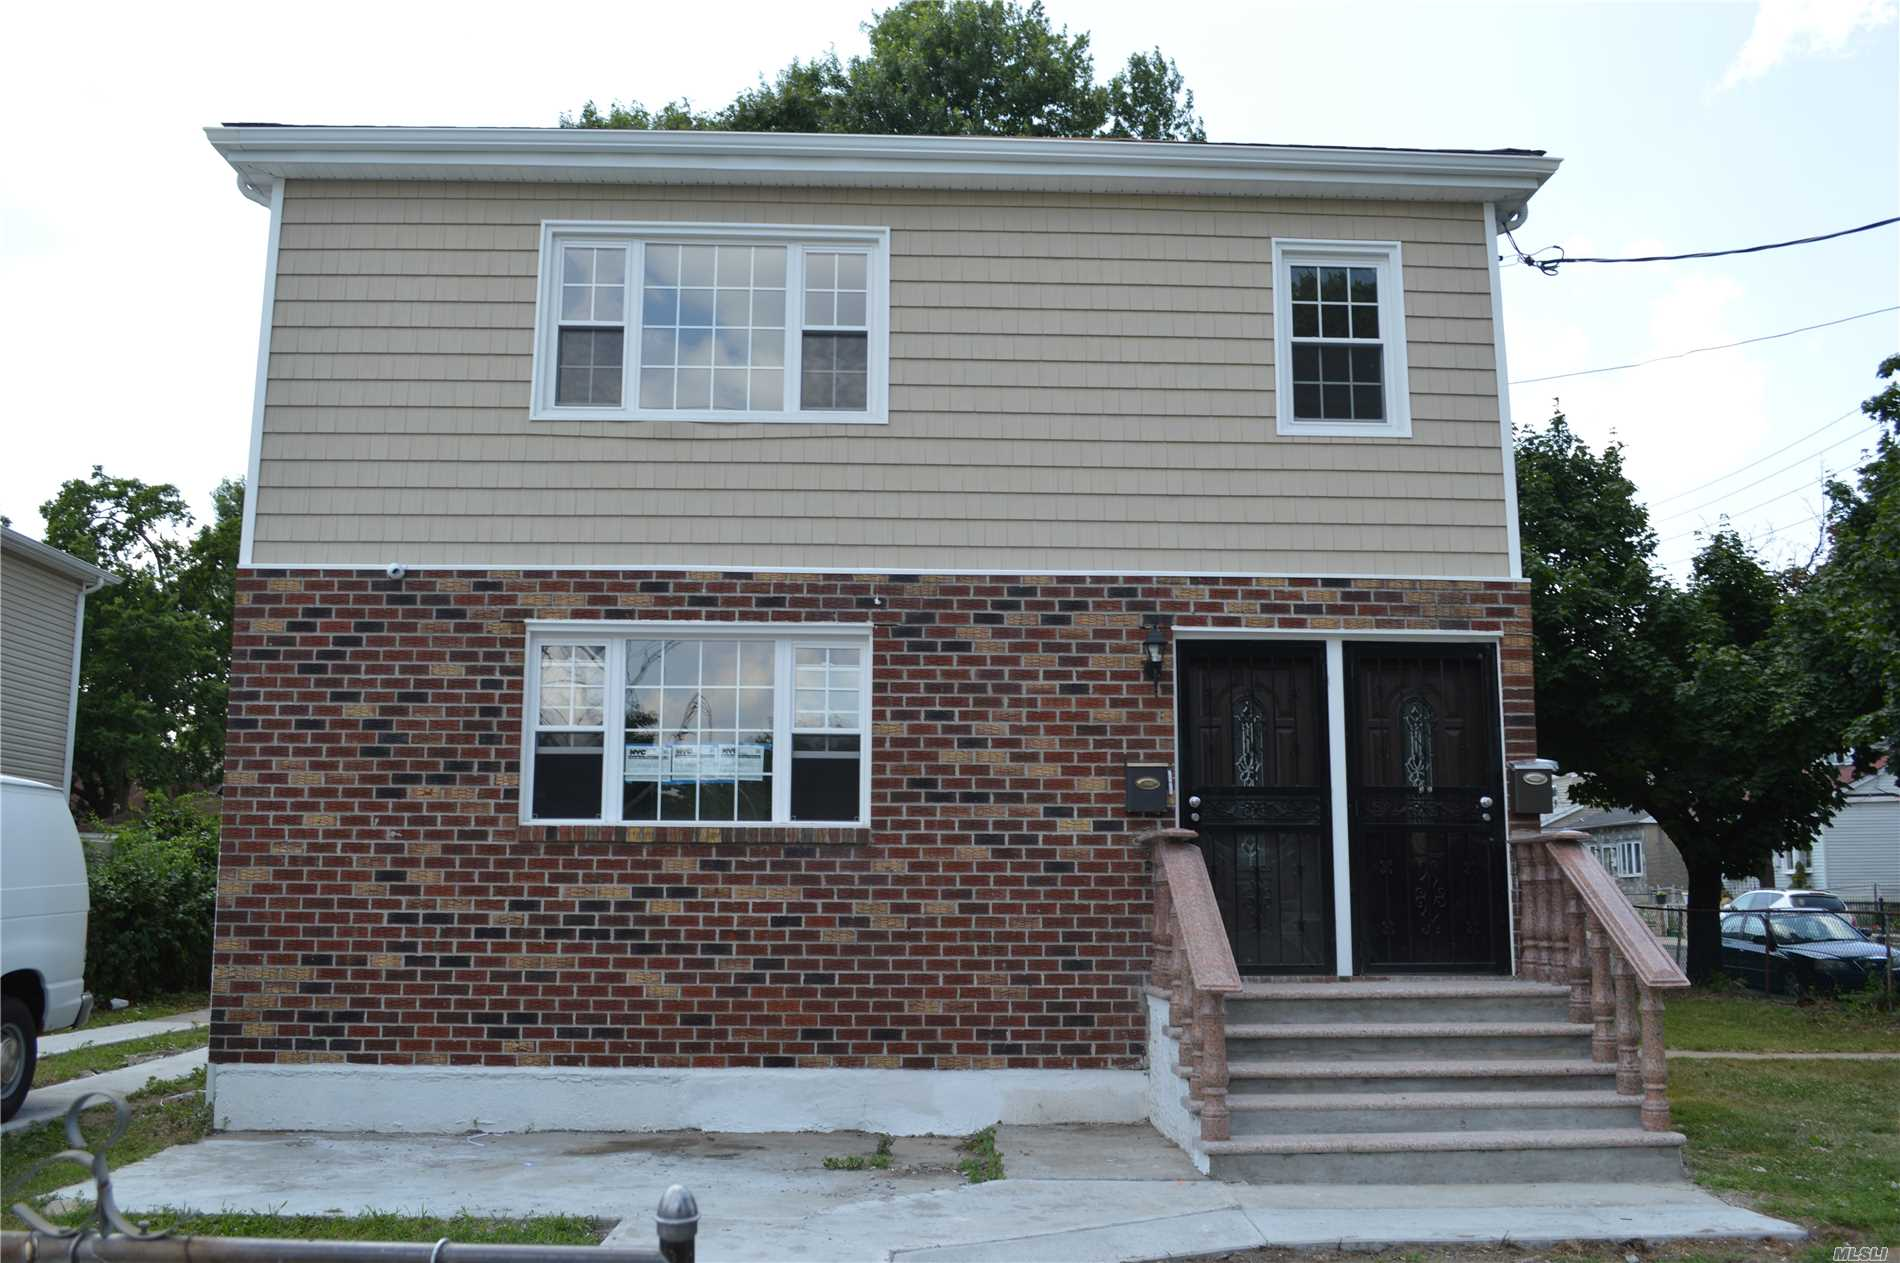 2 Family Colonial Fully Renovated . 6 Bedroom 2 New Kitchens With Stainless Steel Appliances . 1 Full Bath In Each Master Bedroom. Walk In Closet On The Second Floor Master Bedroom. New Wood Floor. Long Extended Driveway For Plenty Of Parking. Separate Entrance To The Basement.